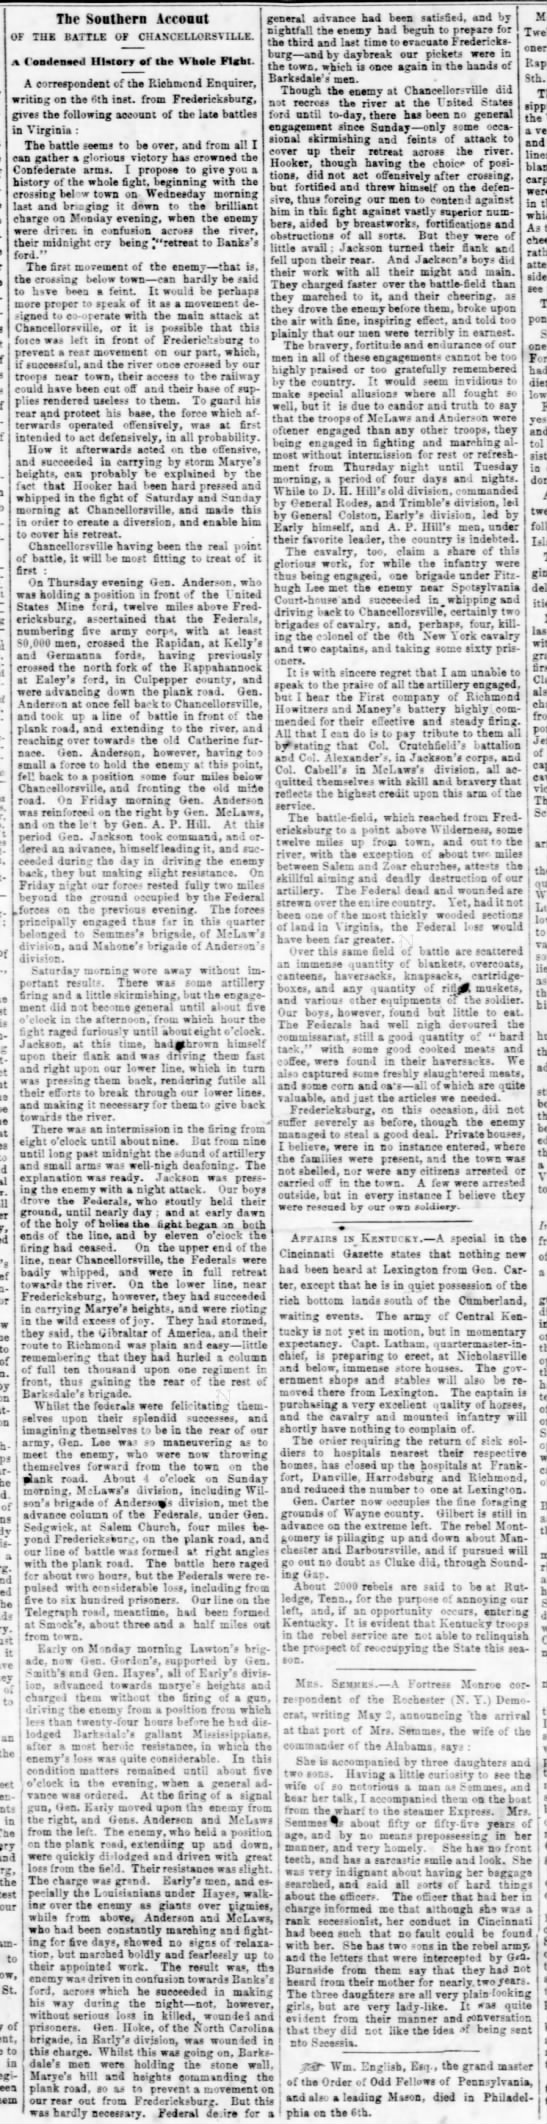 Confederate perspective on the Battle of Chancellorsville written May 6, 1863 -